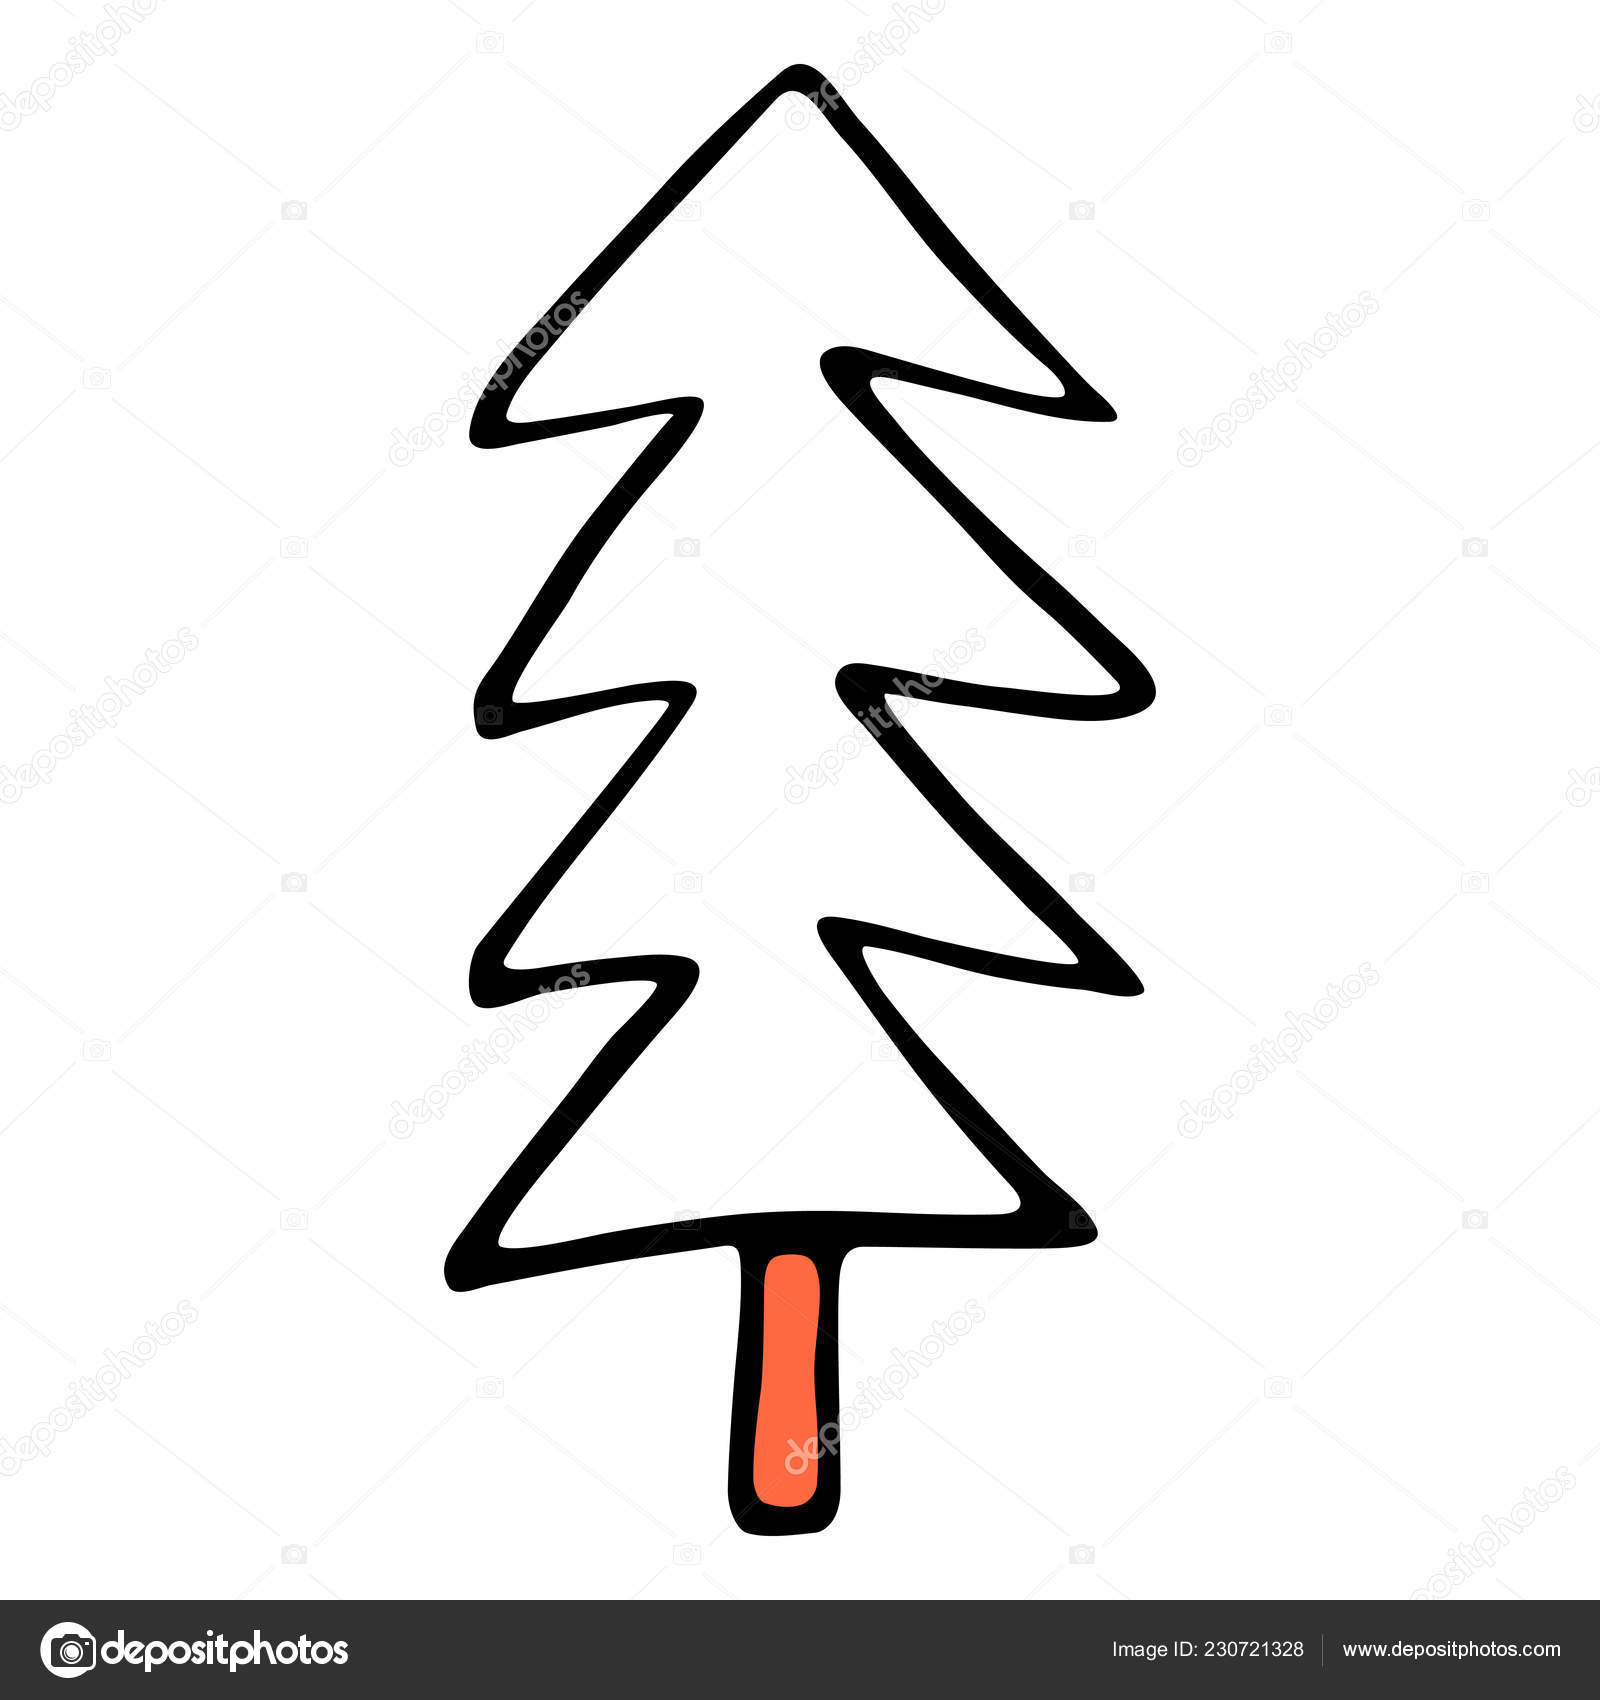 drawing christmas tree spruce fir drawn hand easy quick sketching  drawing of a christmas tree spruce or fir drawn by hand easy and quick sketching or technique imitating children s drawing design graphic element is